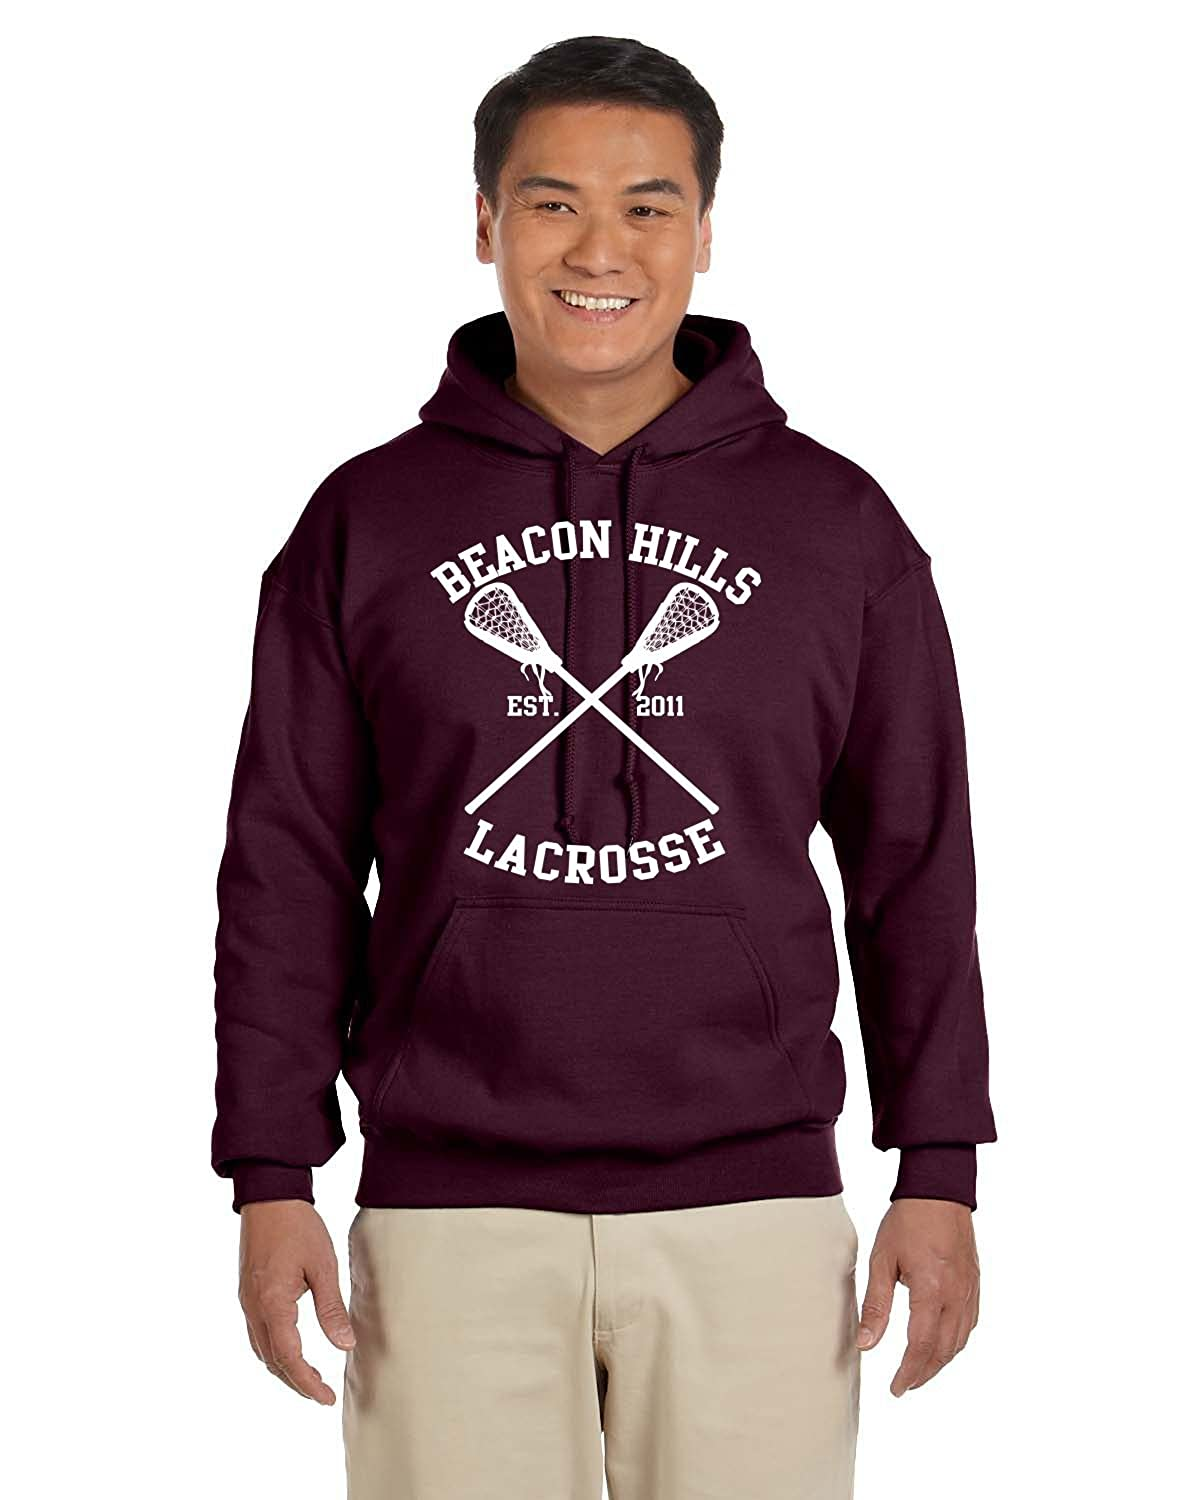 Allntrends Hoodie Bacon Hills Lacrosse Player Name and Number Maroon Color